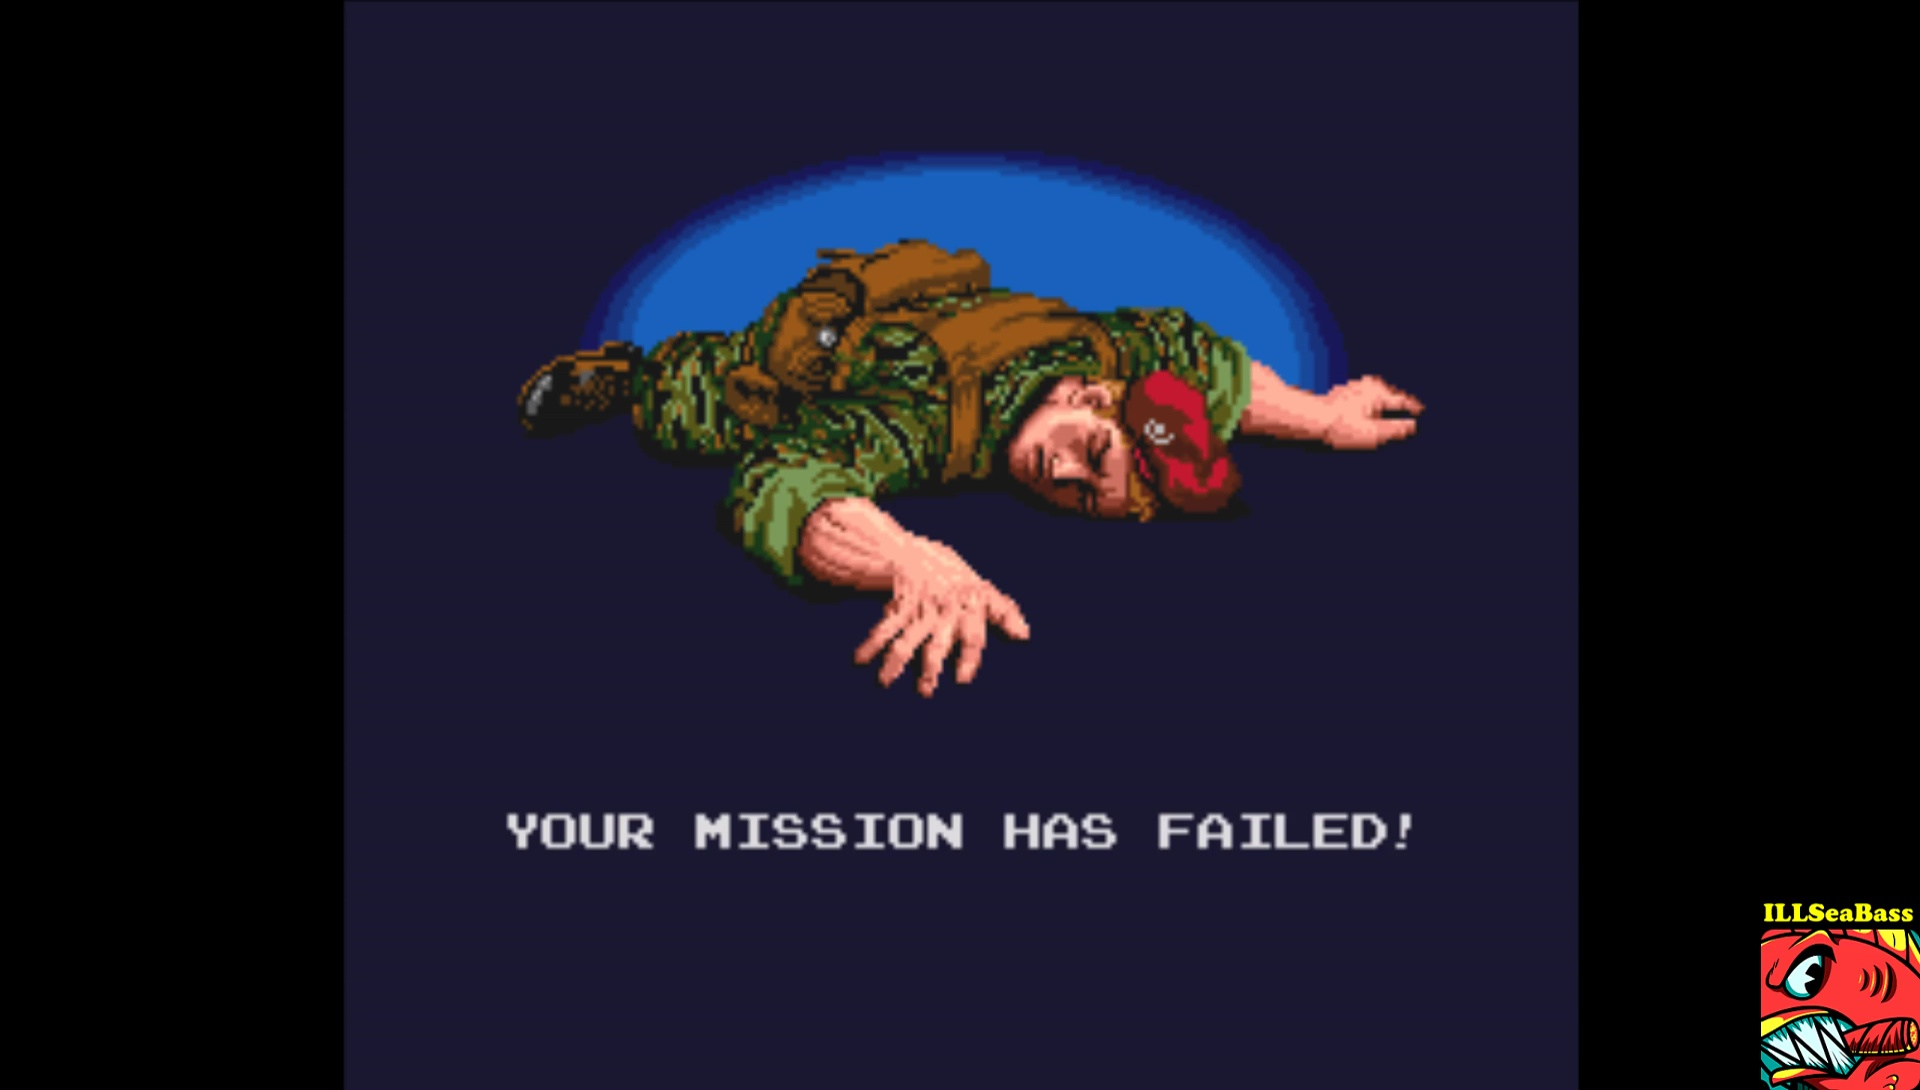 ILLSeaBass: Operation Thunderbolt (SNES/Super Famicom Emulated) 150,050 points on 2017-03-28 23:42:52